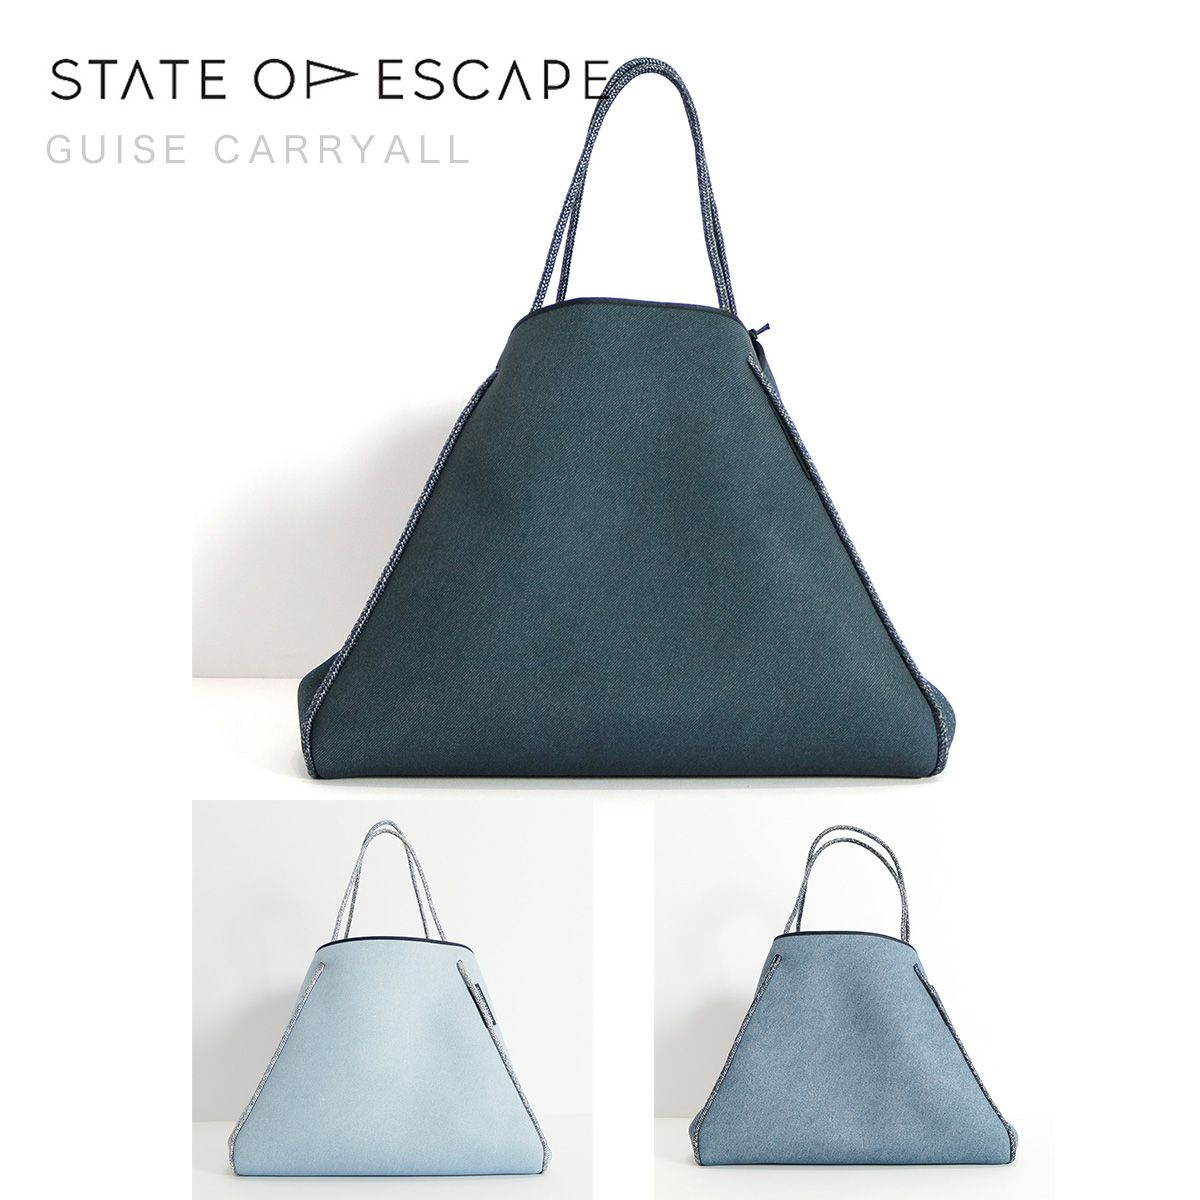 STATE OF ESCAPE ステイトオブエスケープ GUISE CARRYALL トートバッグ インディゴ ブルー ライトブルー |ジムバッグ ママバッグ 18SS/新作/送料無料